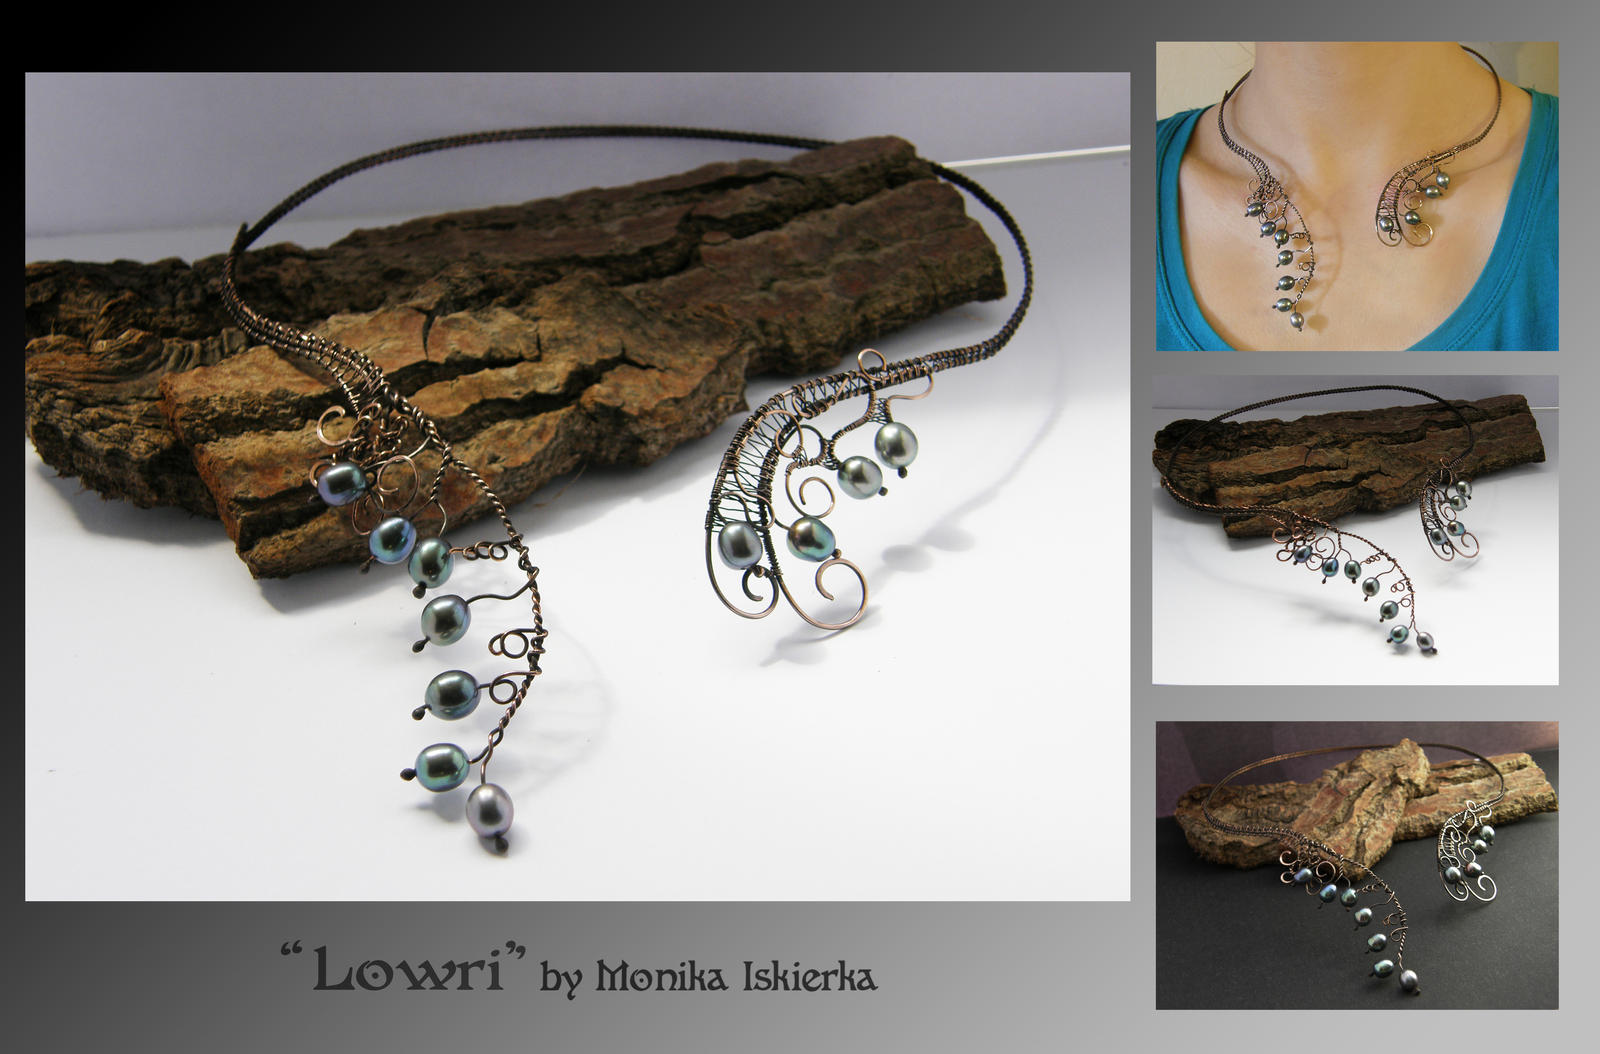 Lowri- wire wrapped necklace by mea00 on DeviantArt